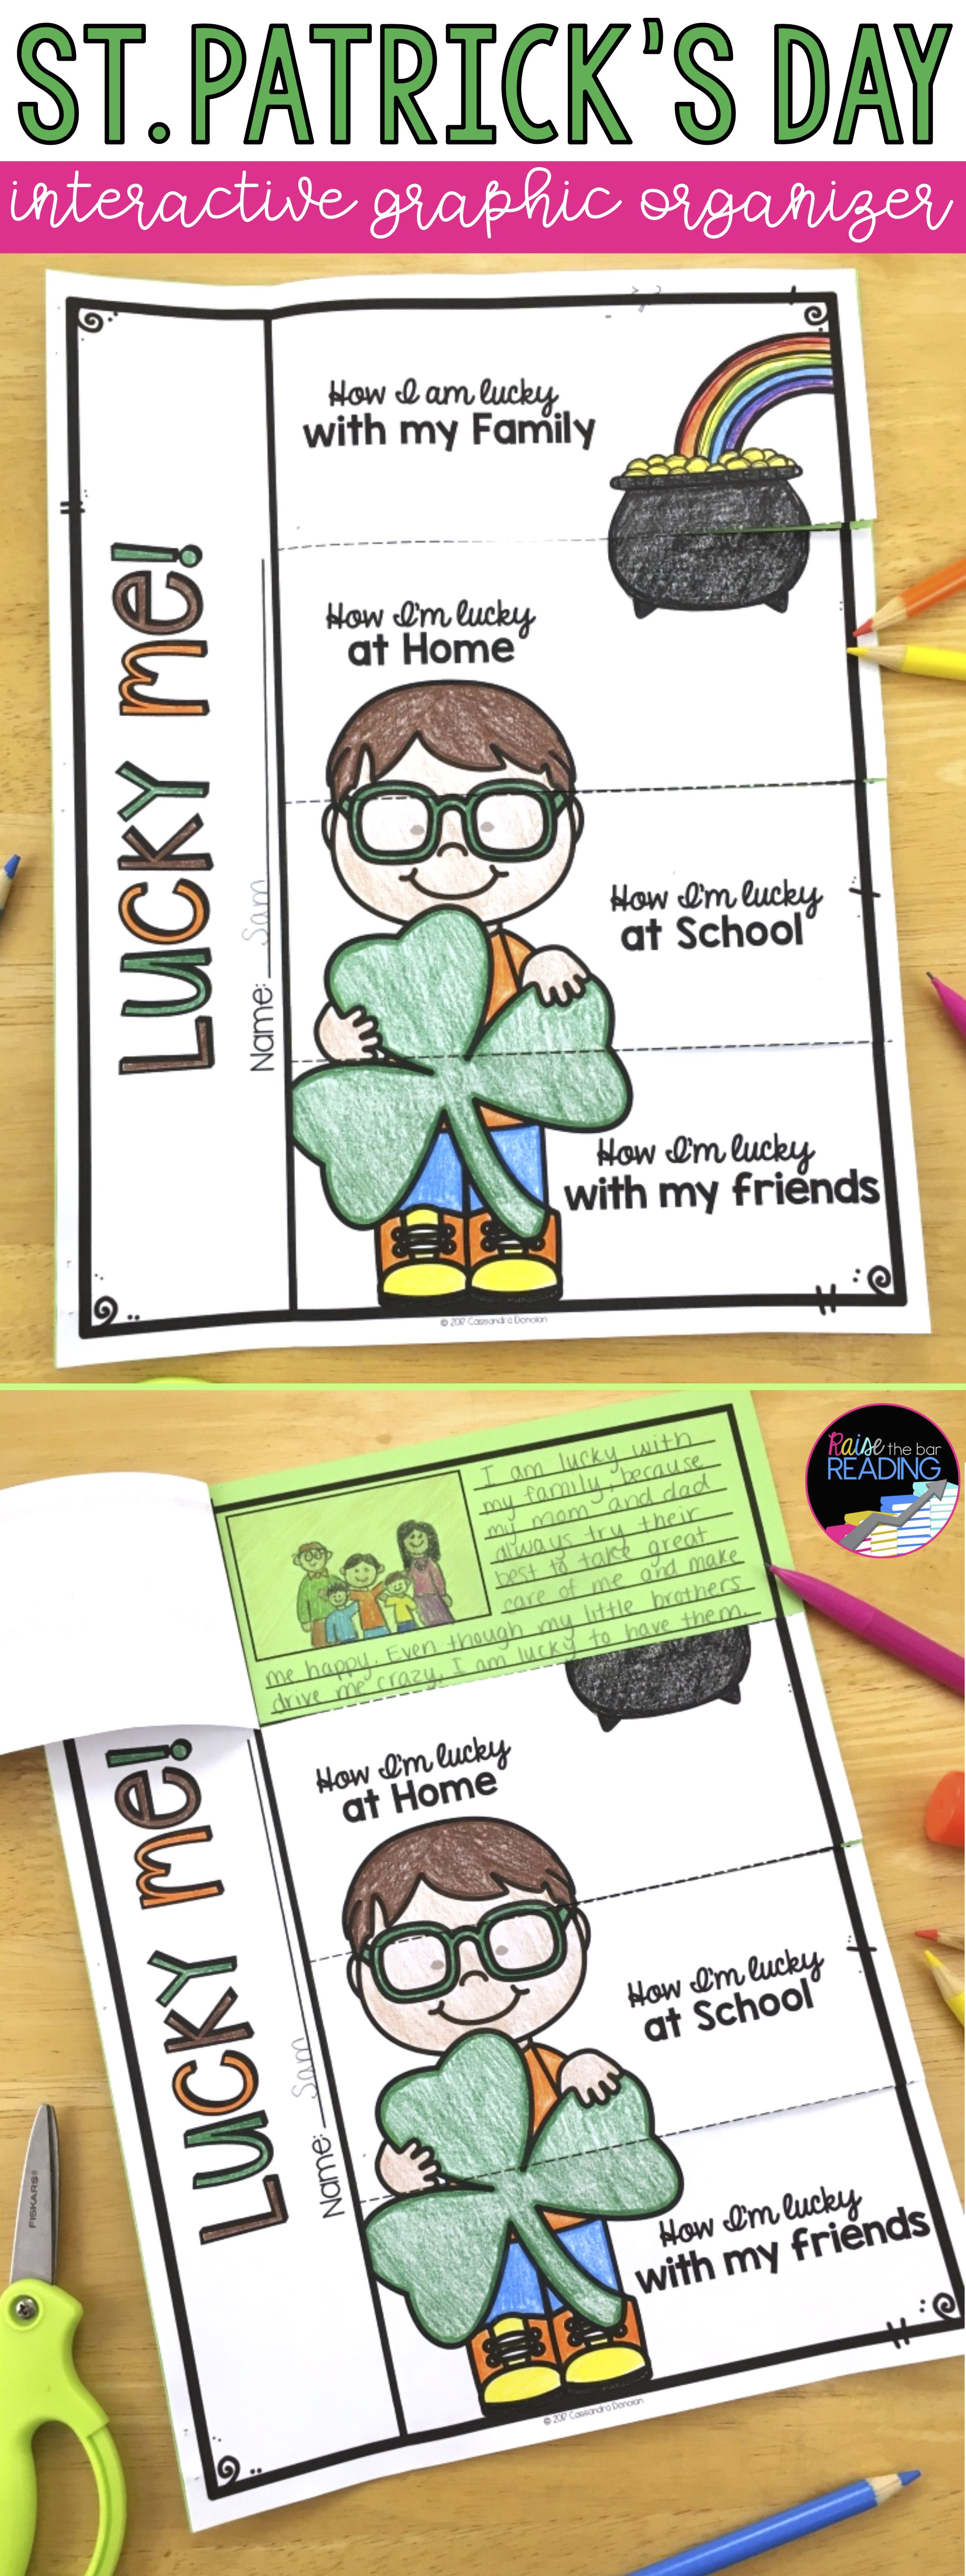 St Patrick S Day Activities And Glyphs St Patrick S Day